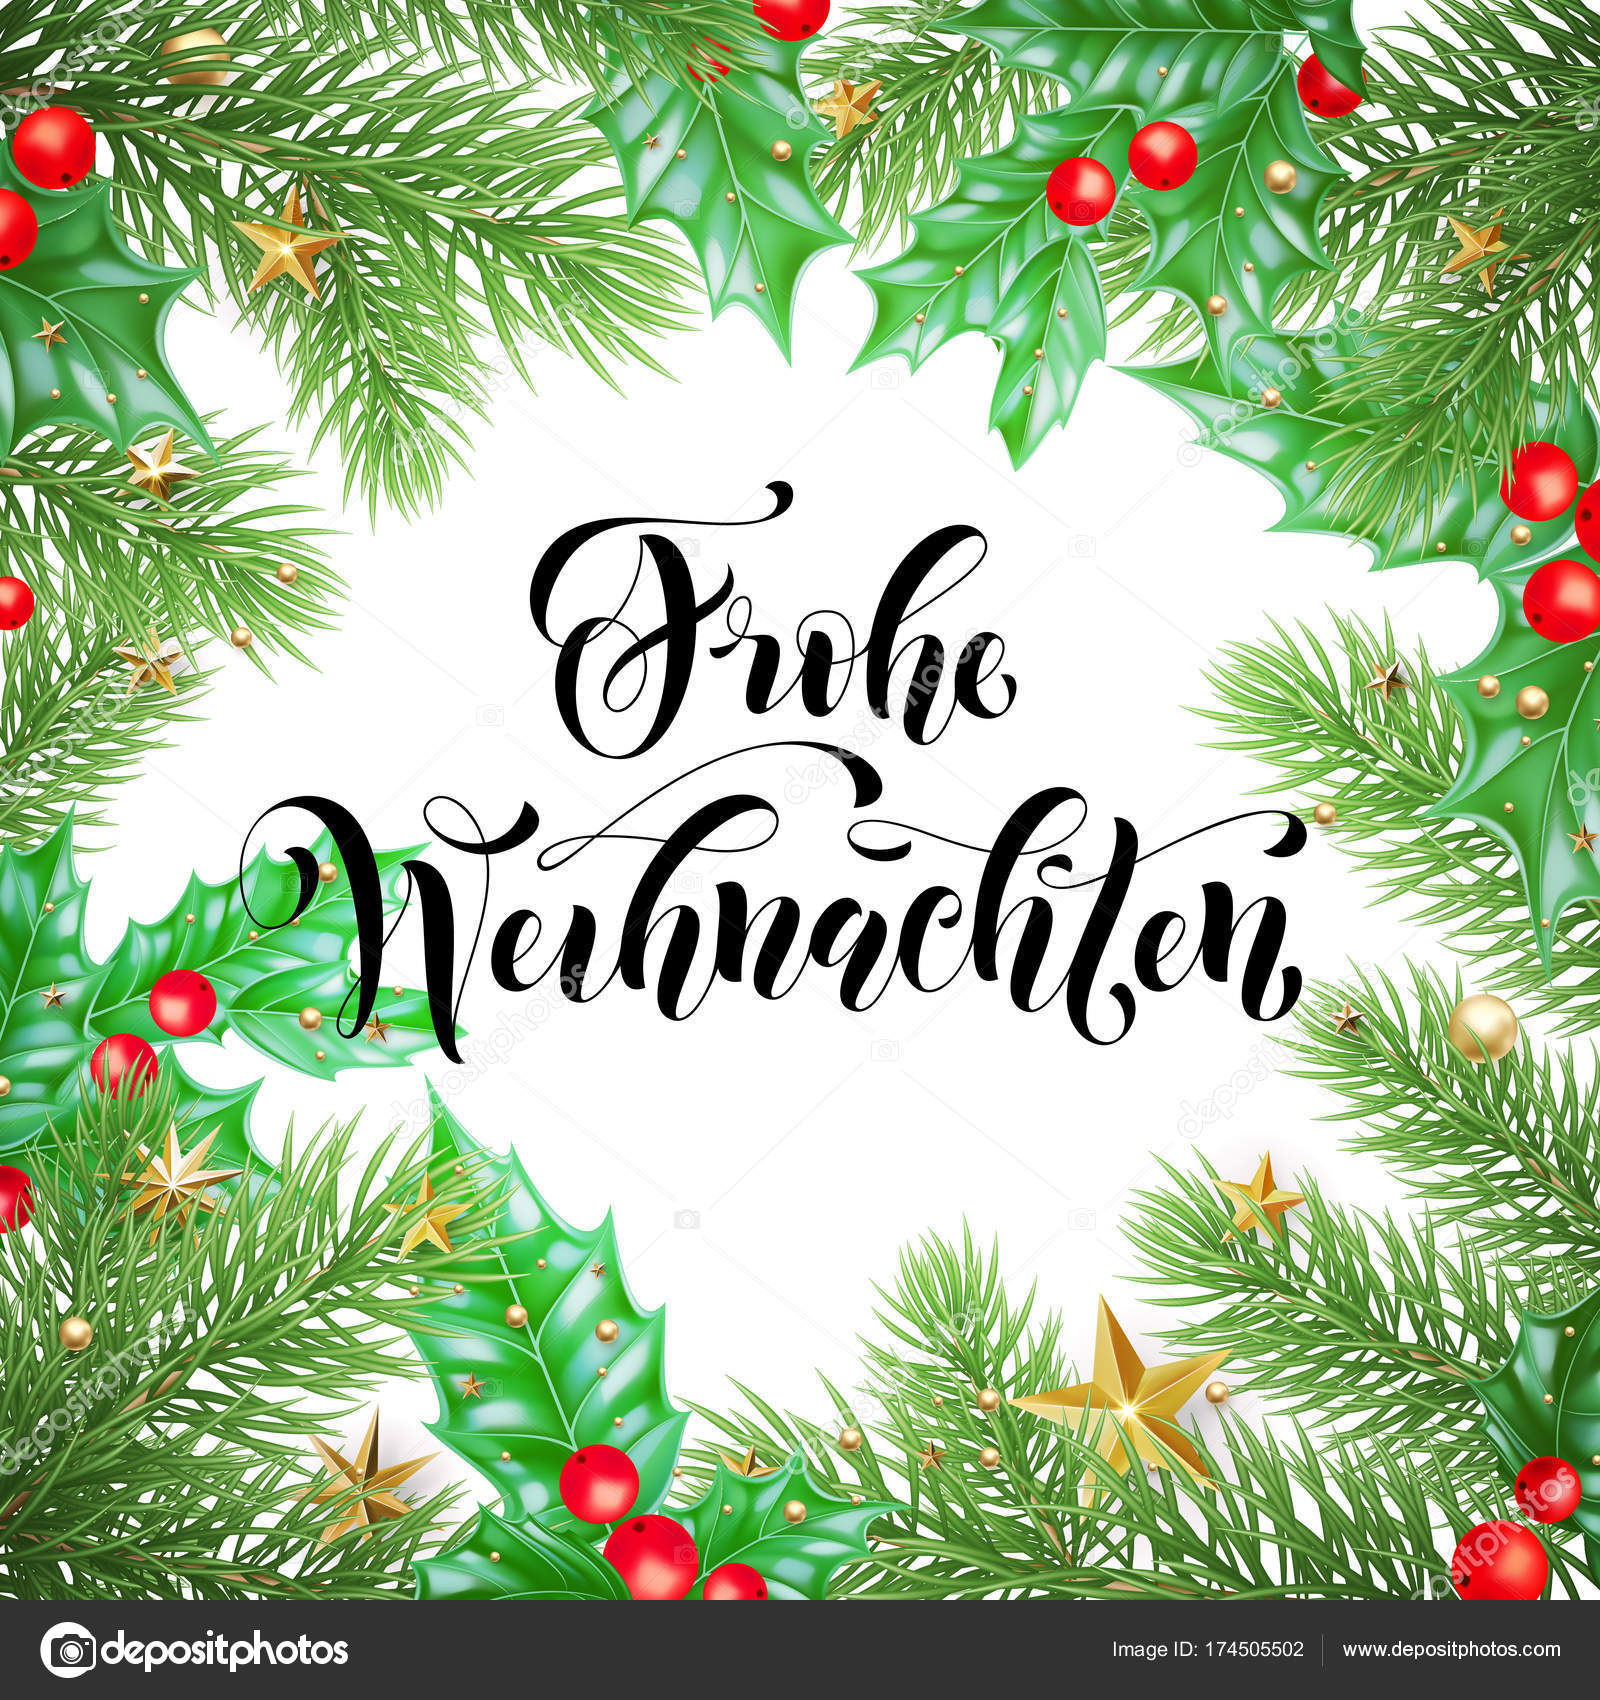 Design Weihnachten Frohe Weihnachten German Merry Christmas Hand Drawn Quote